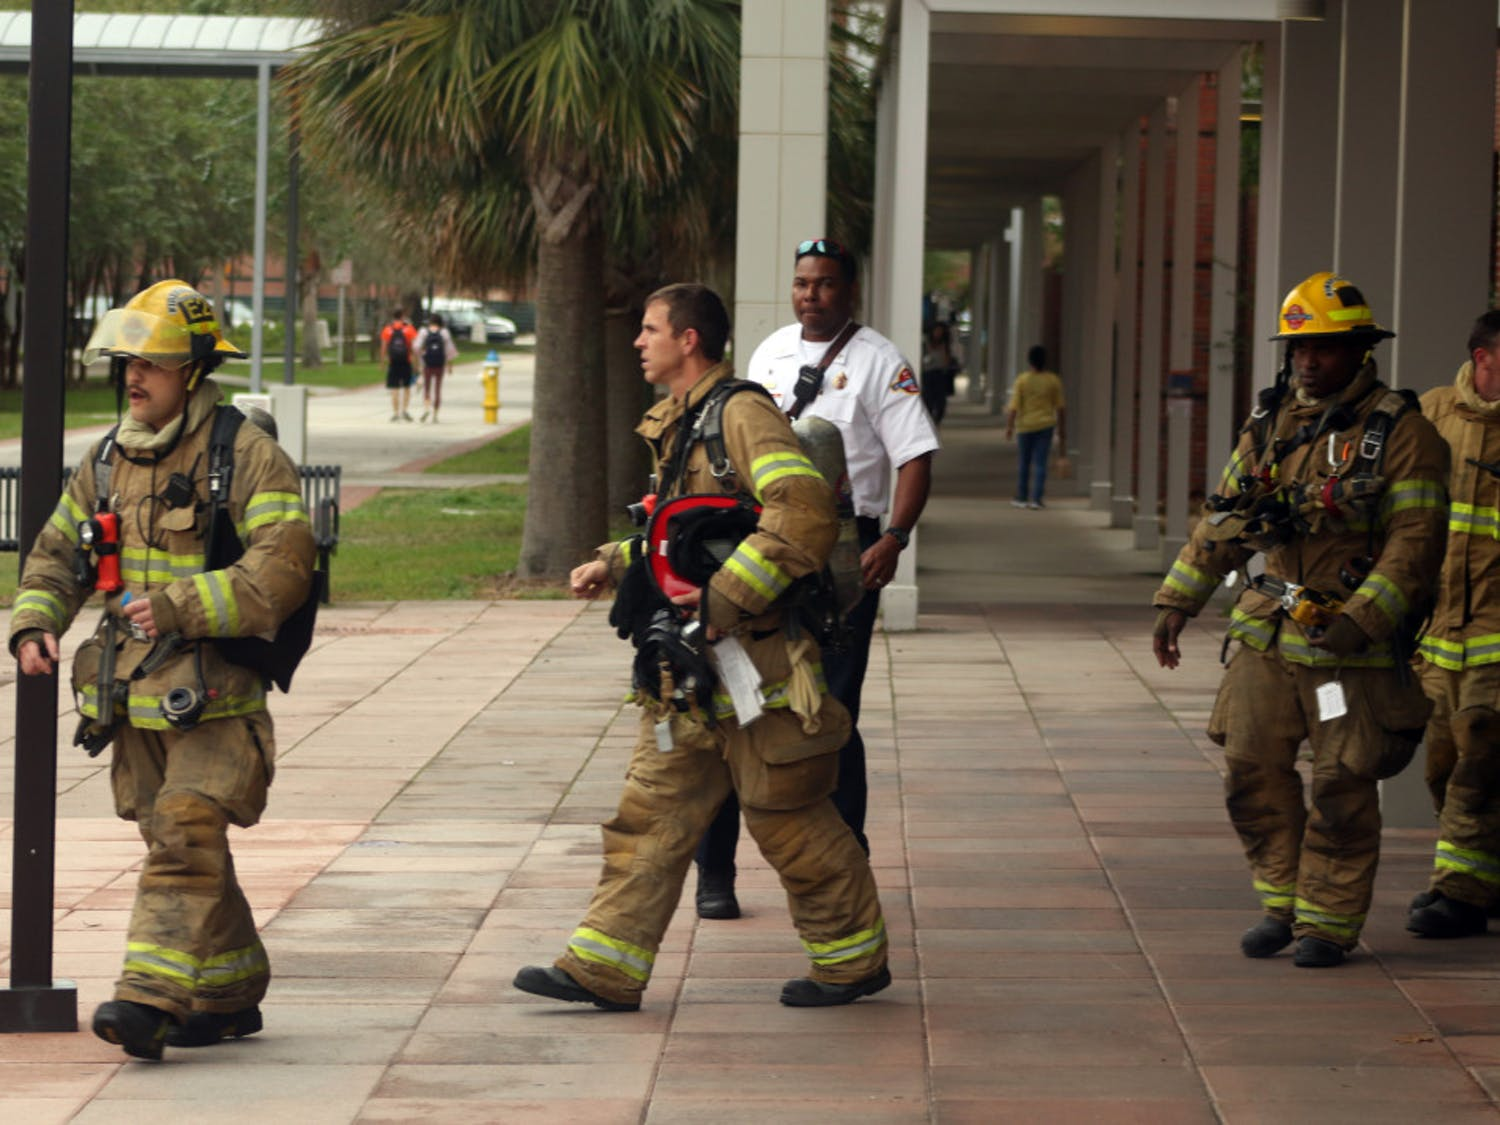 Gainesville Fire Rescue firefighters come out of the Biomedical Sciences Building in bunker gear after assessing the chemical spill on Monday, Nov. 5, 2018. The spill was contained within the fume hood and the hazmat team determined that the room was safe.